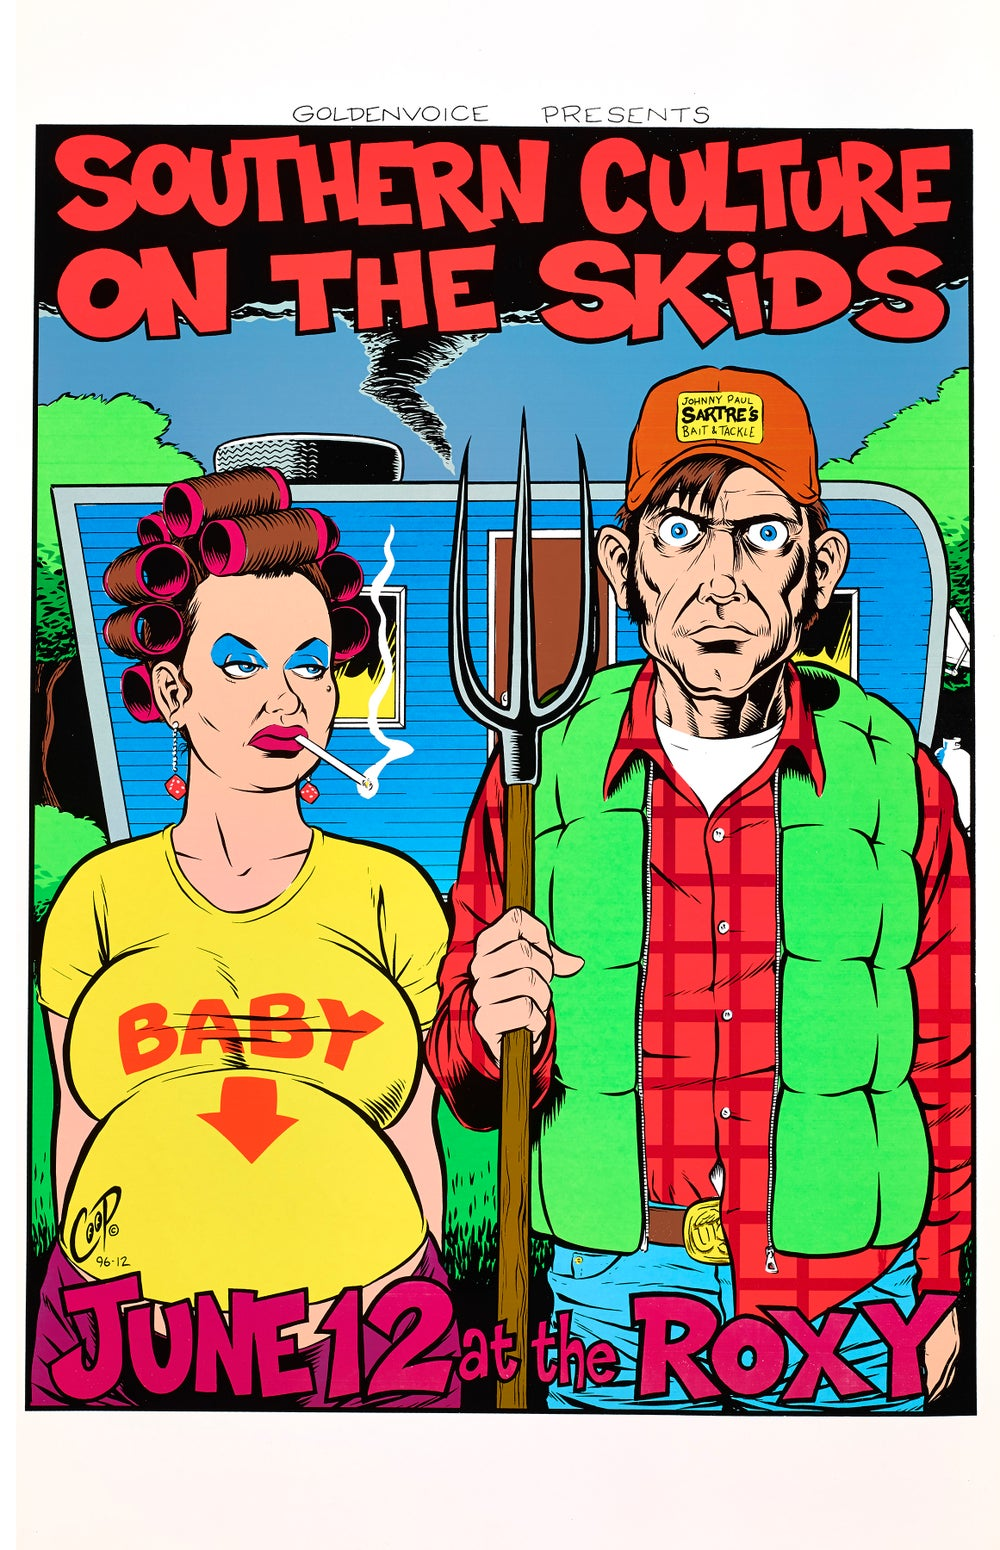 Image of SOUTHERN CULTURE ON THE SKIDS Vintage Silkscreen Print